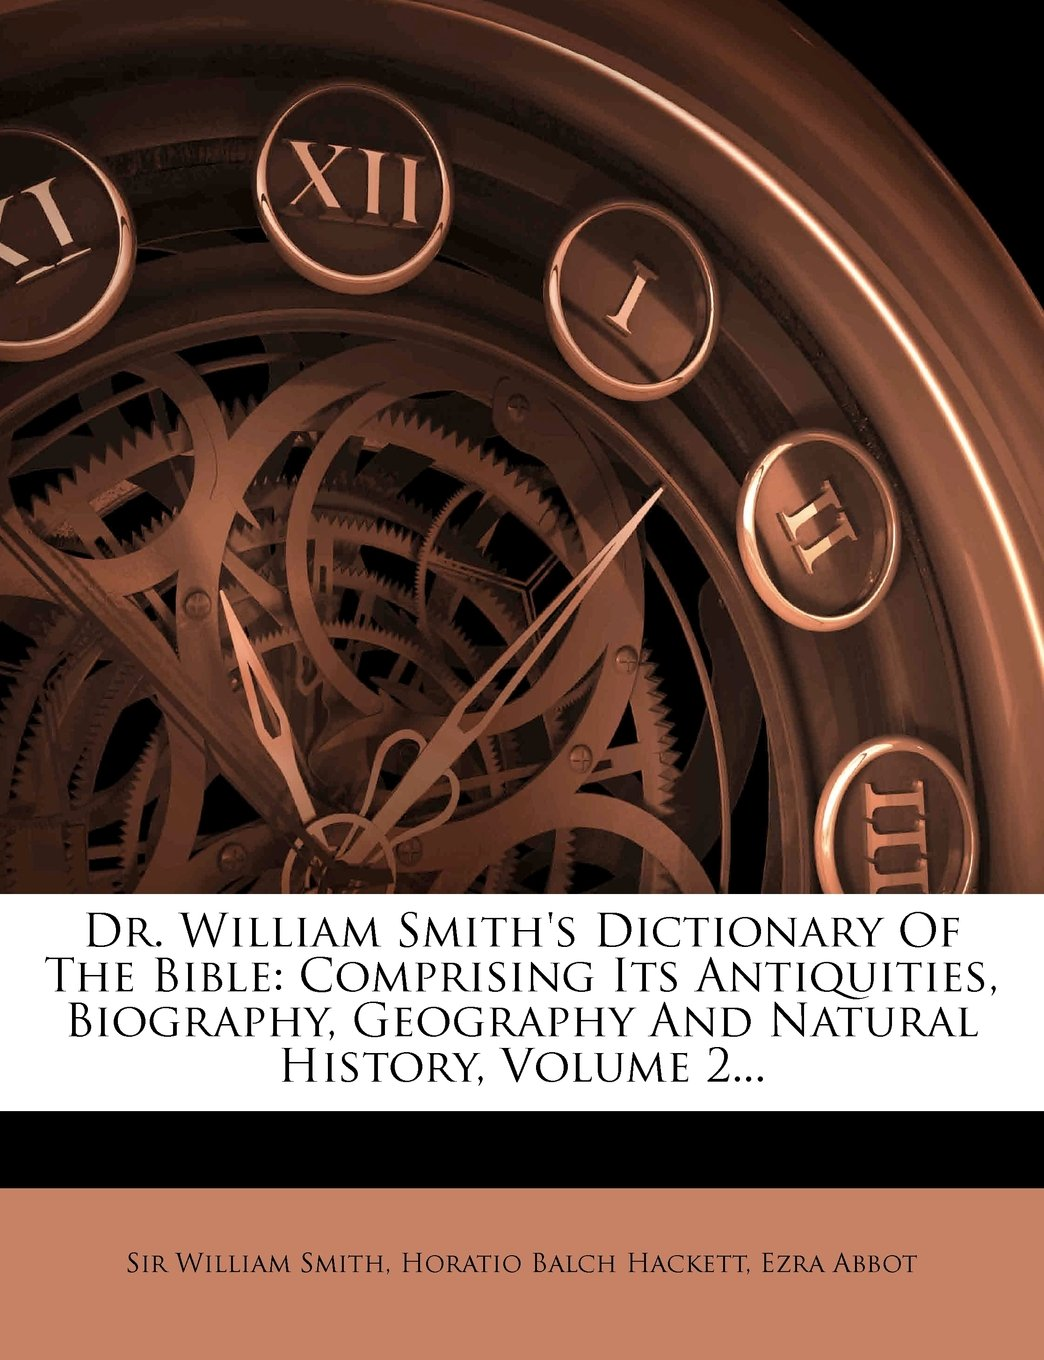 Download Dr. William Smith's Dictionary of the Bible: Comprising Its Antiquities, Biography, Geography and Natural History, Volume 2... PDF